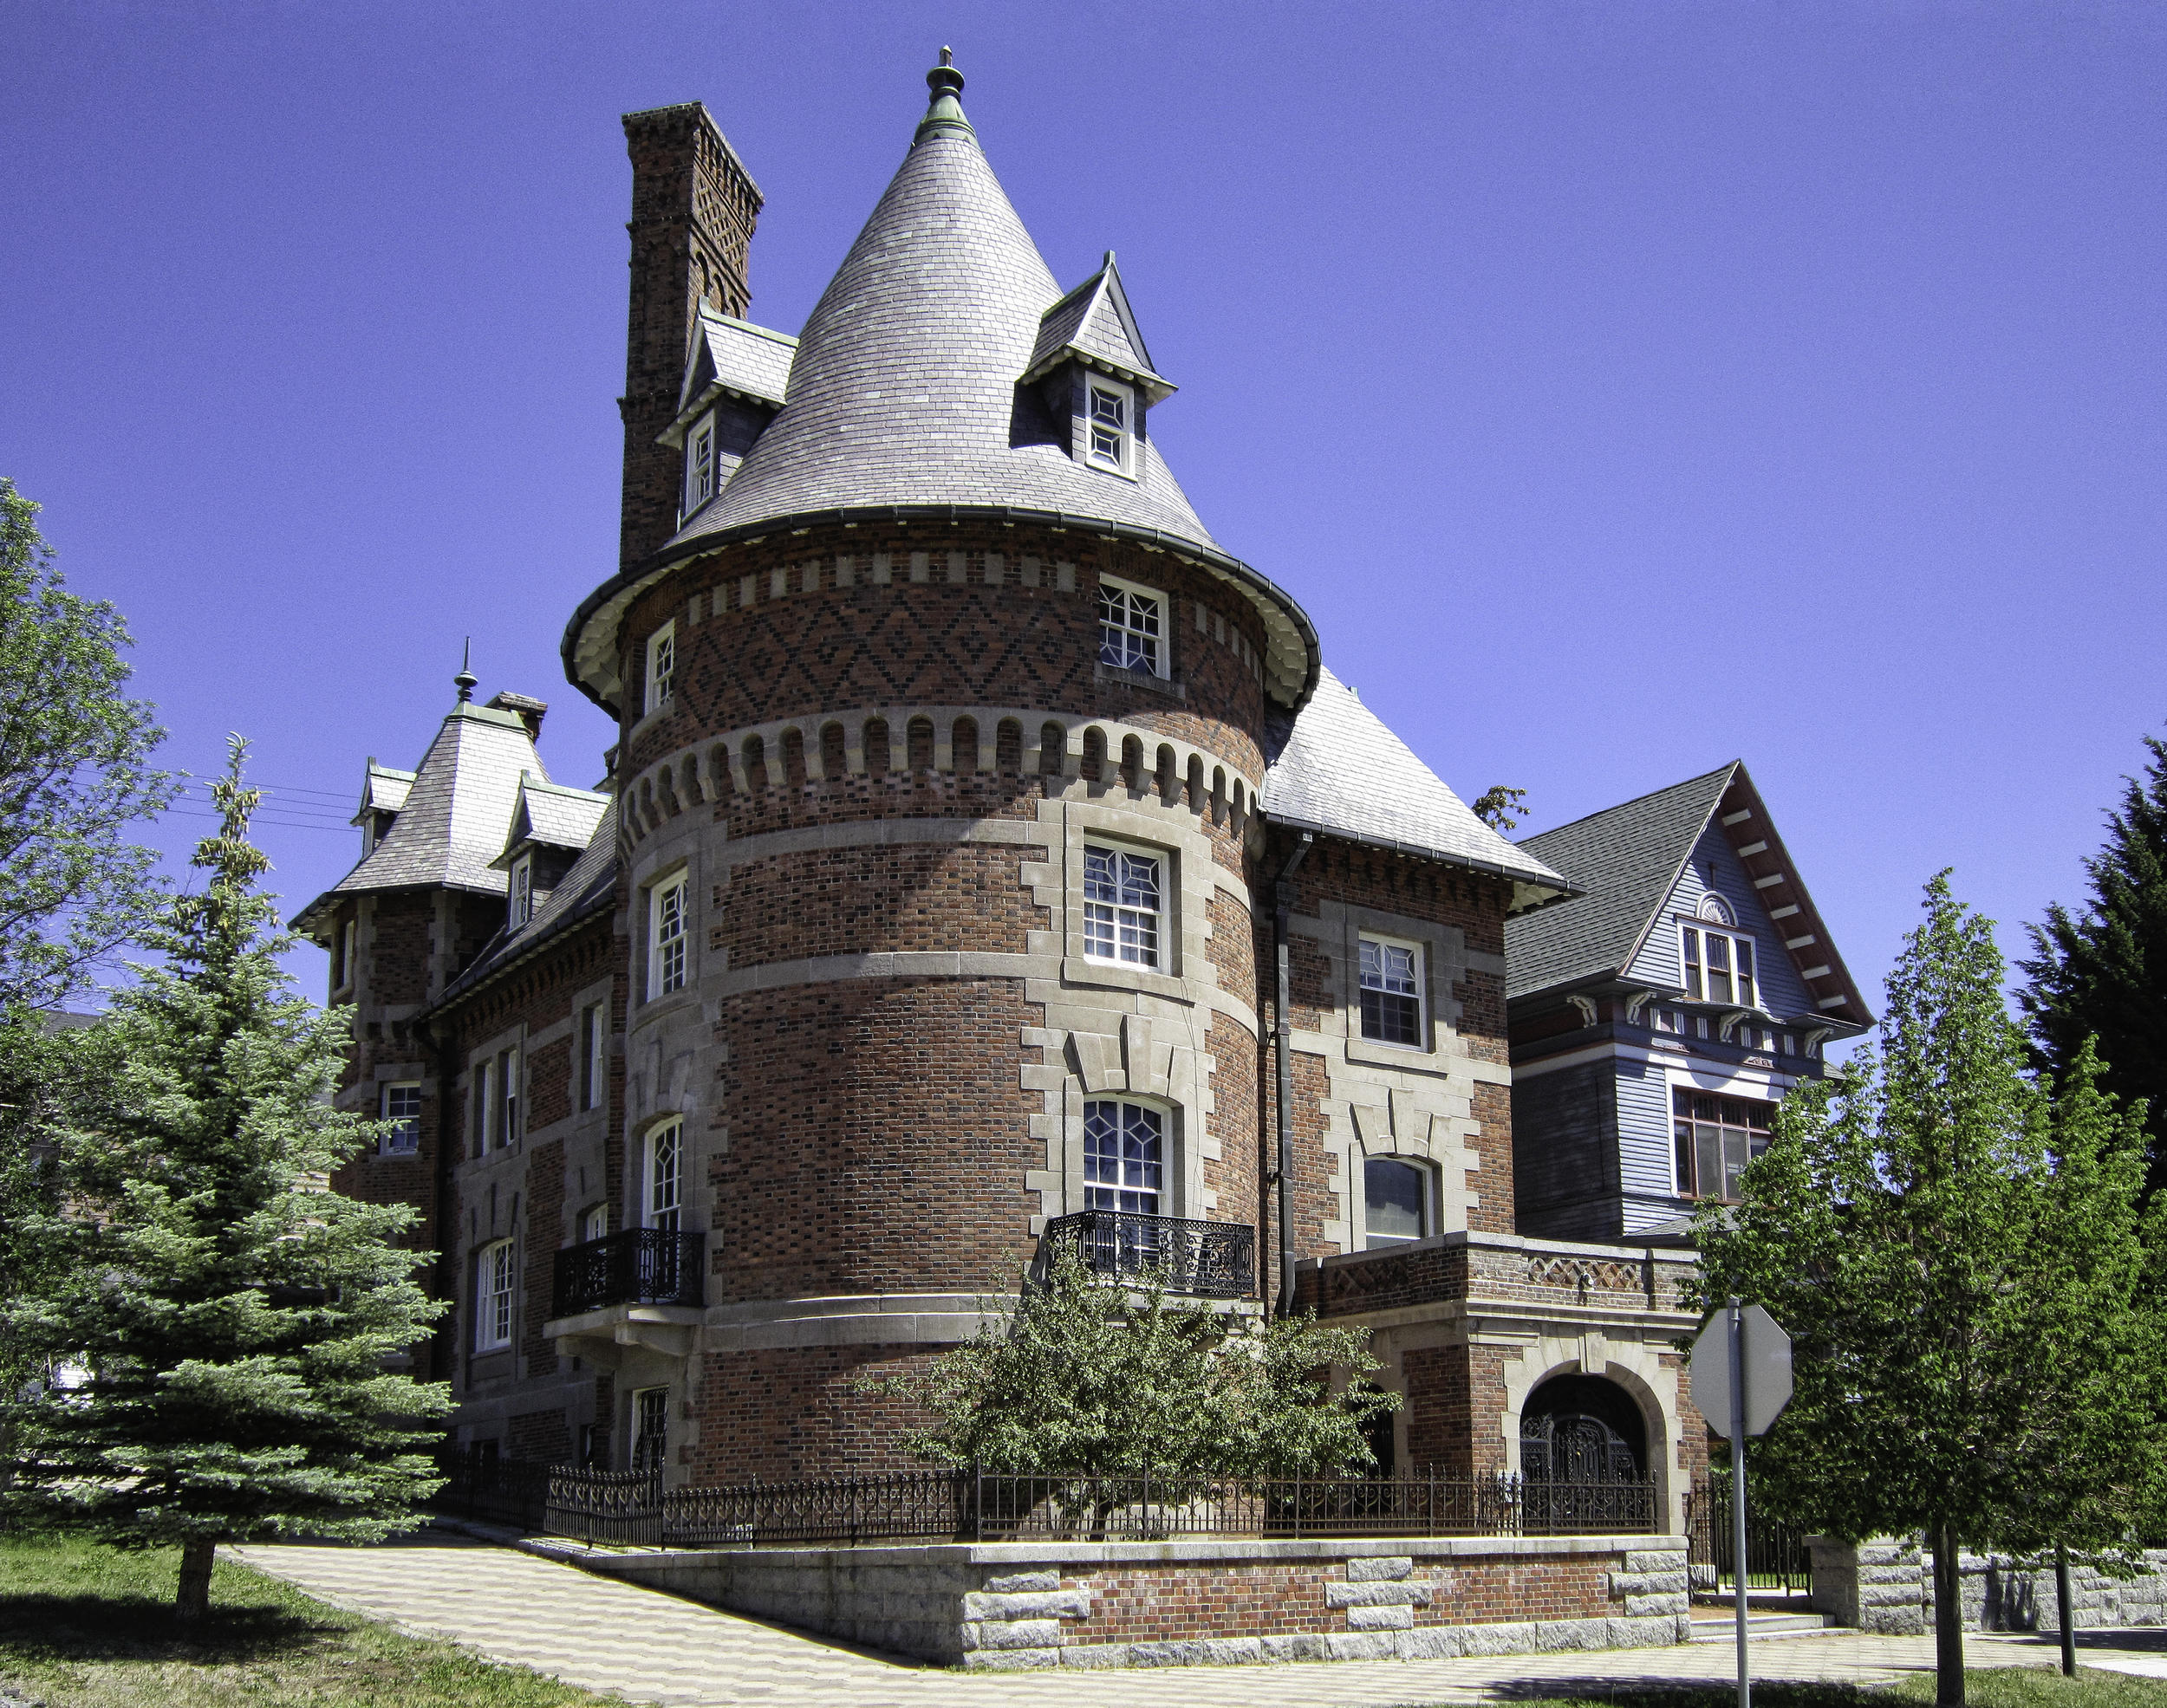 Clark Chateau, 321 W. Broadway, Butte, Montana. Built 1898- by W.A. Clark for his eldest son, Charles. 1884-1888. c. Daniel Hagerman. Prints for sale at http://fineartamerica.com/art/all/copper+king+mansion/all. More info at https://clarkchateaubutte.wordpress.com/history/.